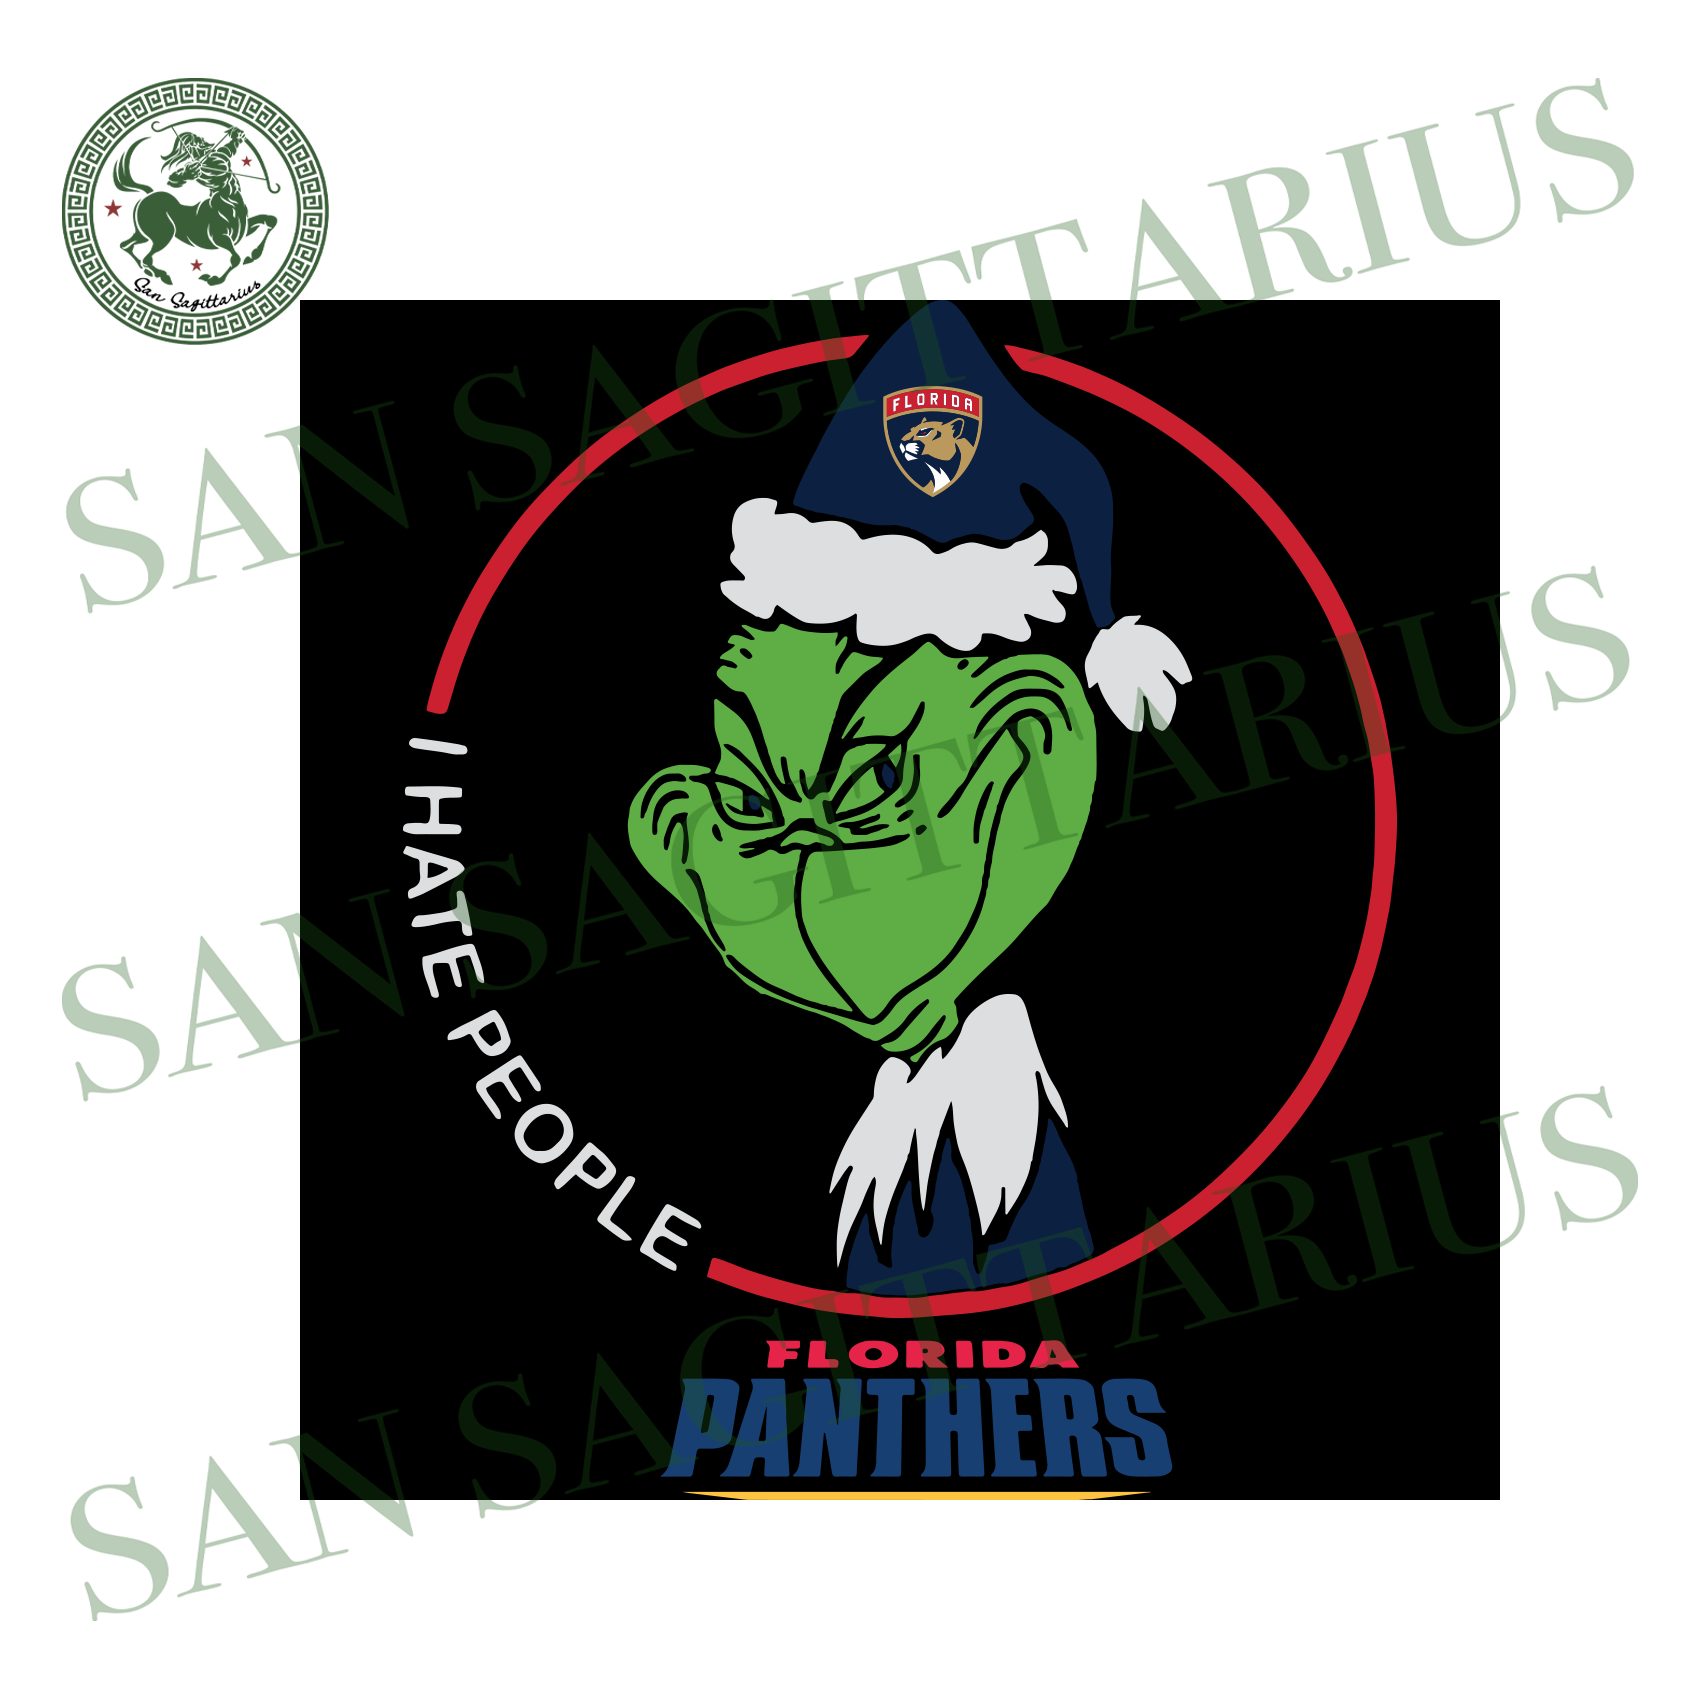 Florida Panthers Logo, Sport Svg, Florida Panthers Svg, NHL Svg, NHL Logo Svg, Grinch Svg, Florida Panthers Hockey, NHL Sport, Hockey Svg, Hockey Logo, Grinch Lovers, Grinch Gift, Green Grinc